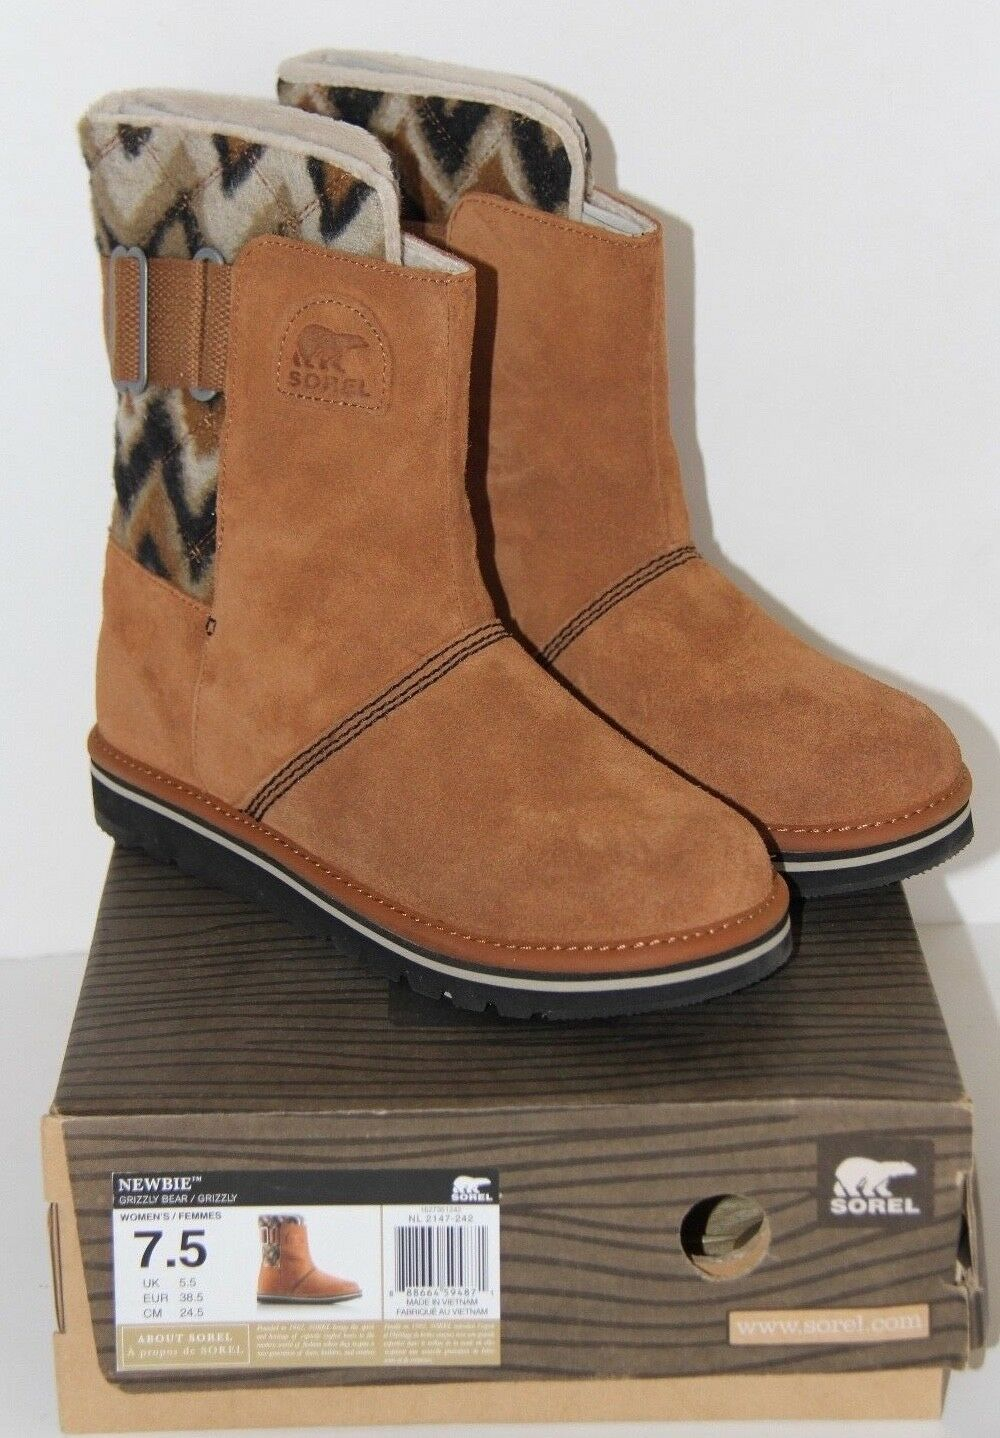 SOREL Women's Newbie Chevron Leather Suede Campus Boot - Grizzly Bear - 7.5 NEW